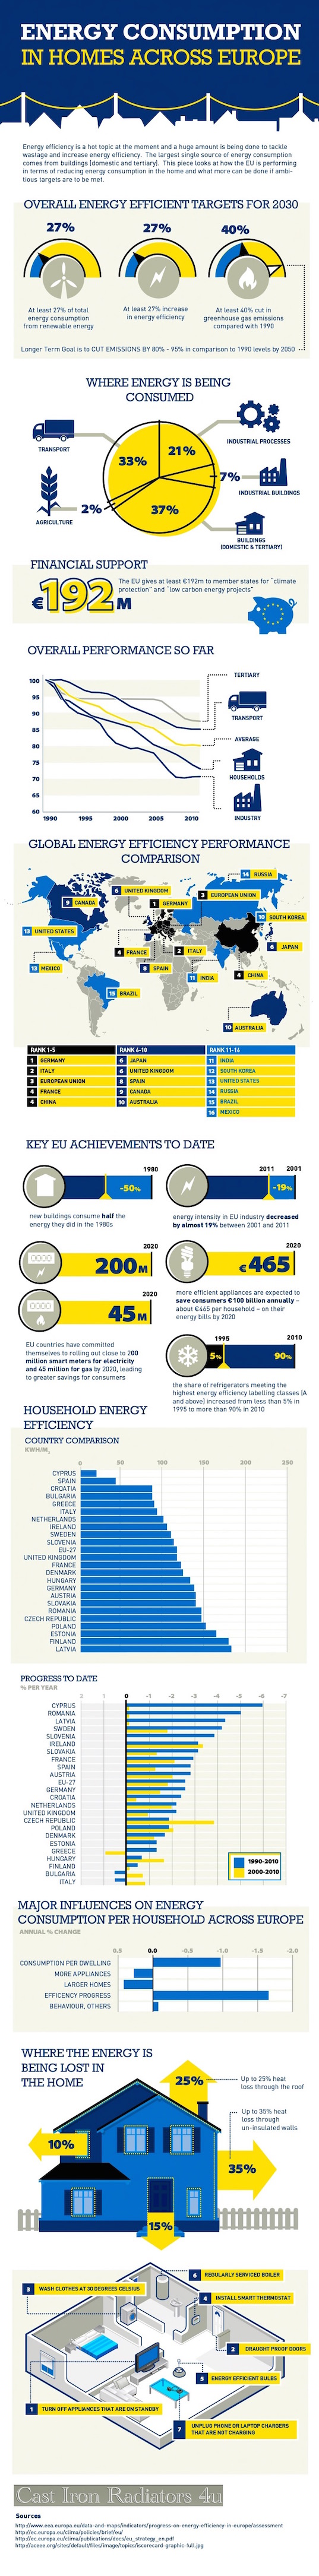 energy efficiency, infographic, reader submitted content, european union, EU energy efficiency, Cast Iron Radiators 4u,